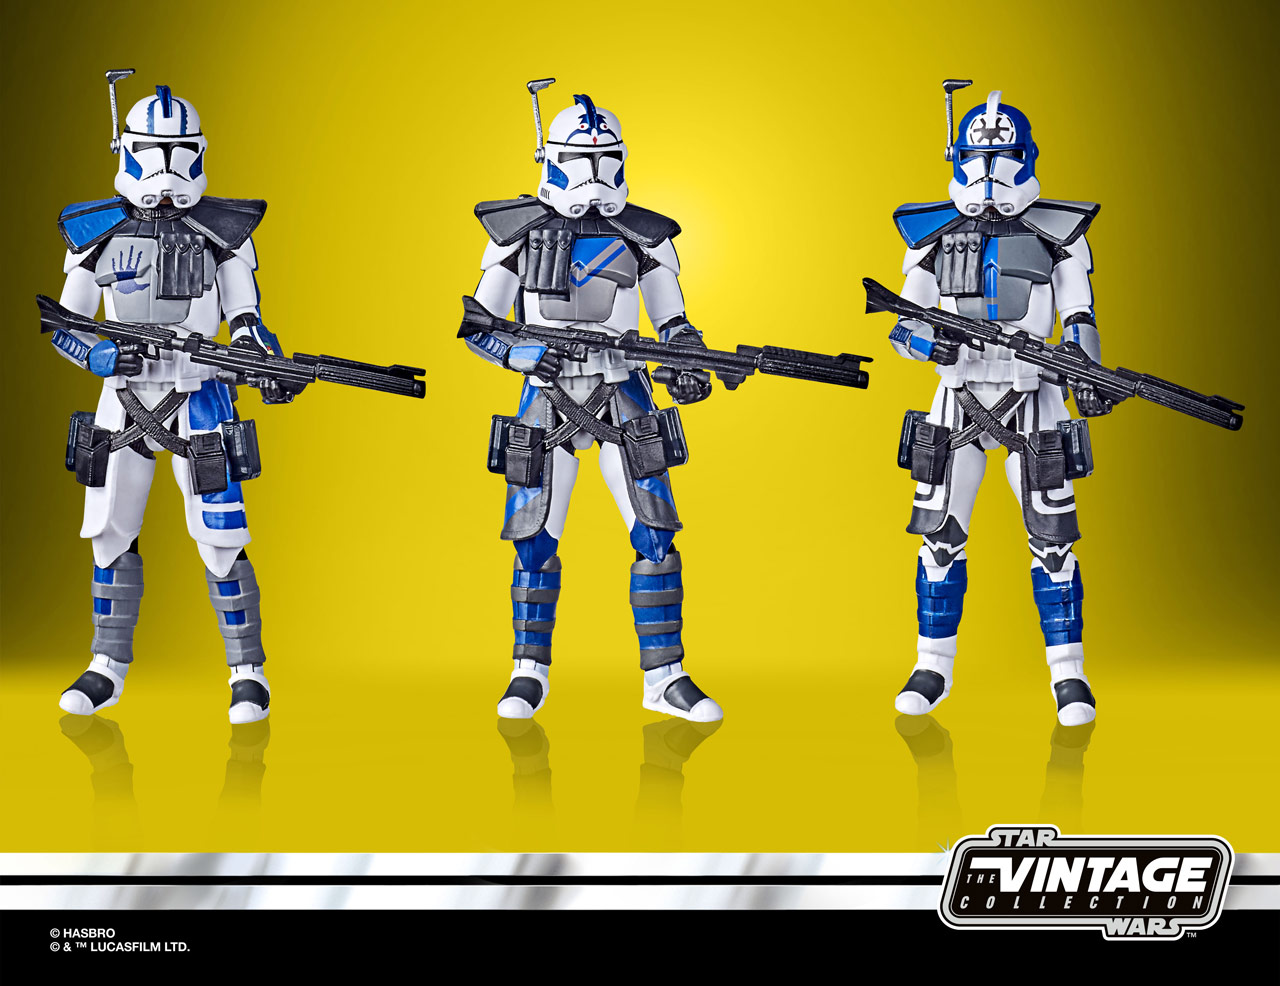 Star Wars: The Vintage Collection Star Wars: The Clone Wars 501st Legion ARC Troopers Figure 3-Pack